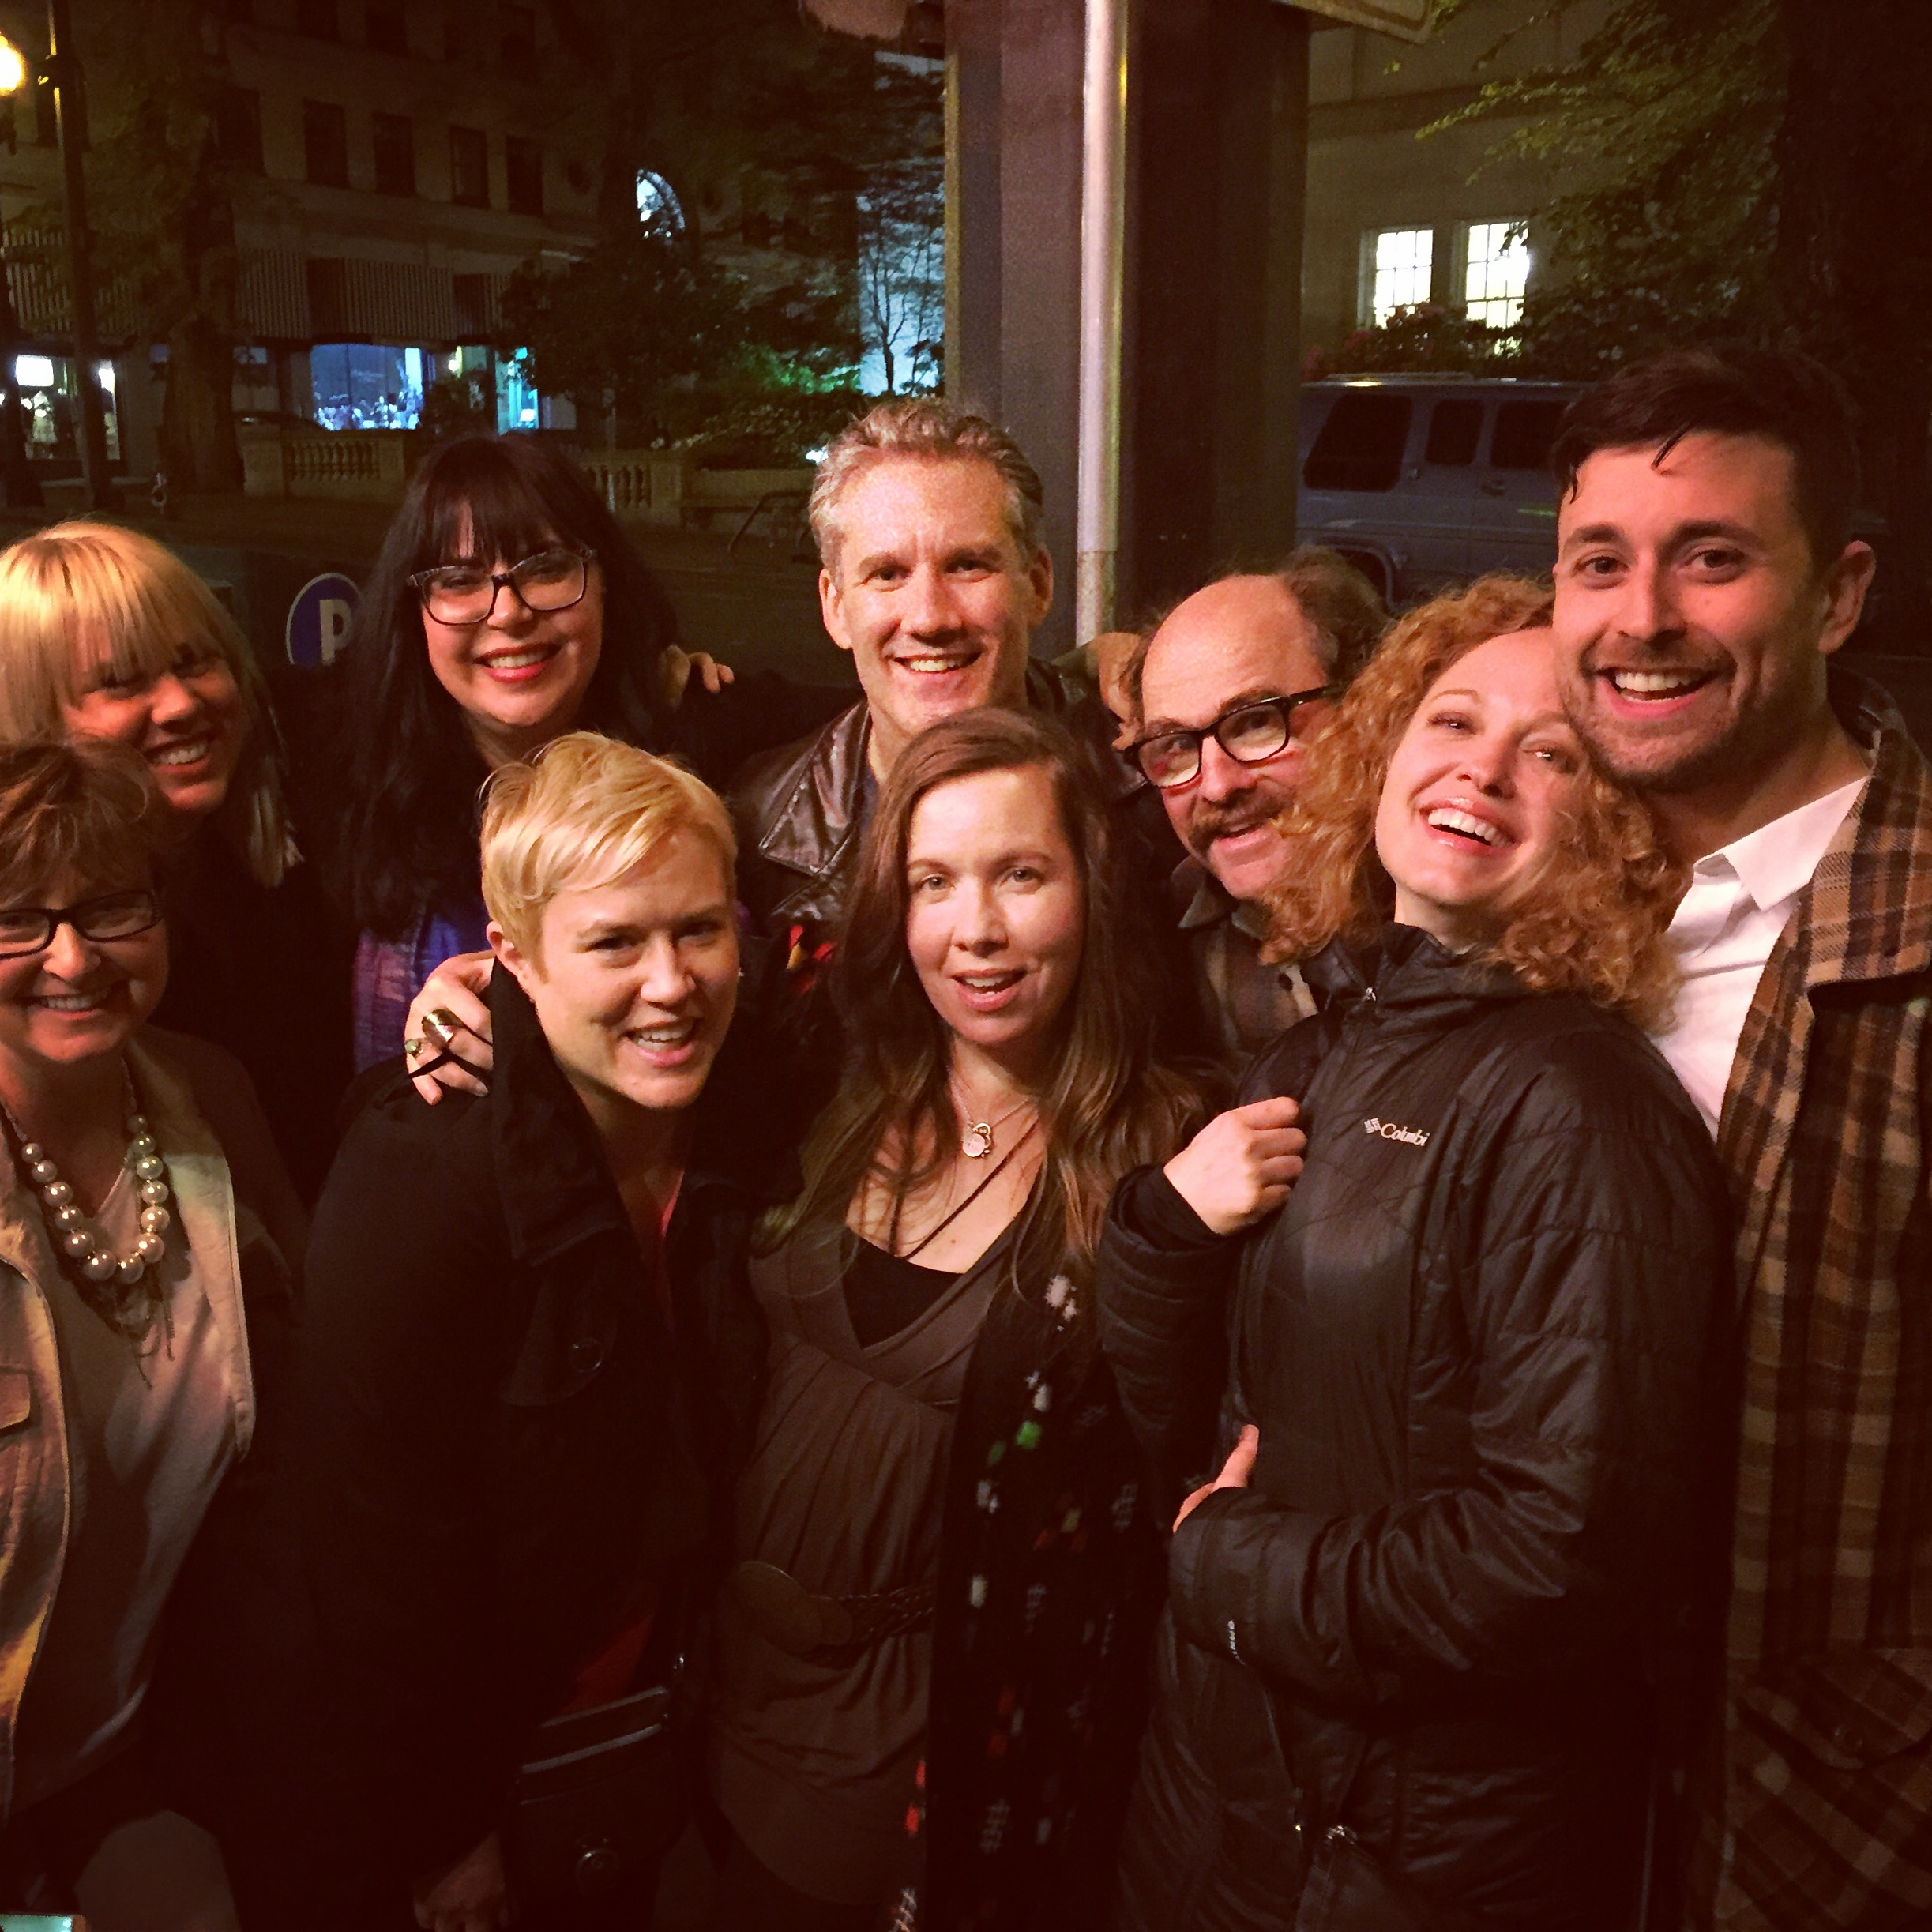 Ok, maybe we're a little tipsy - cast and crew celebrating post screening/premiere at the Virginal Cafe in Portland Oregon!